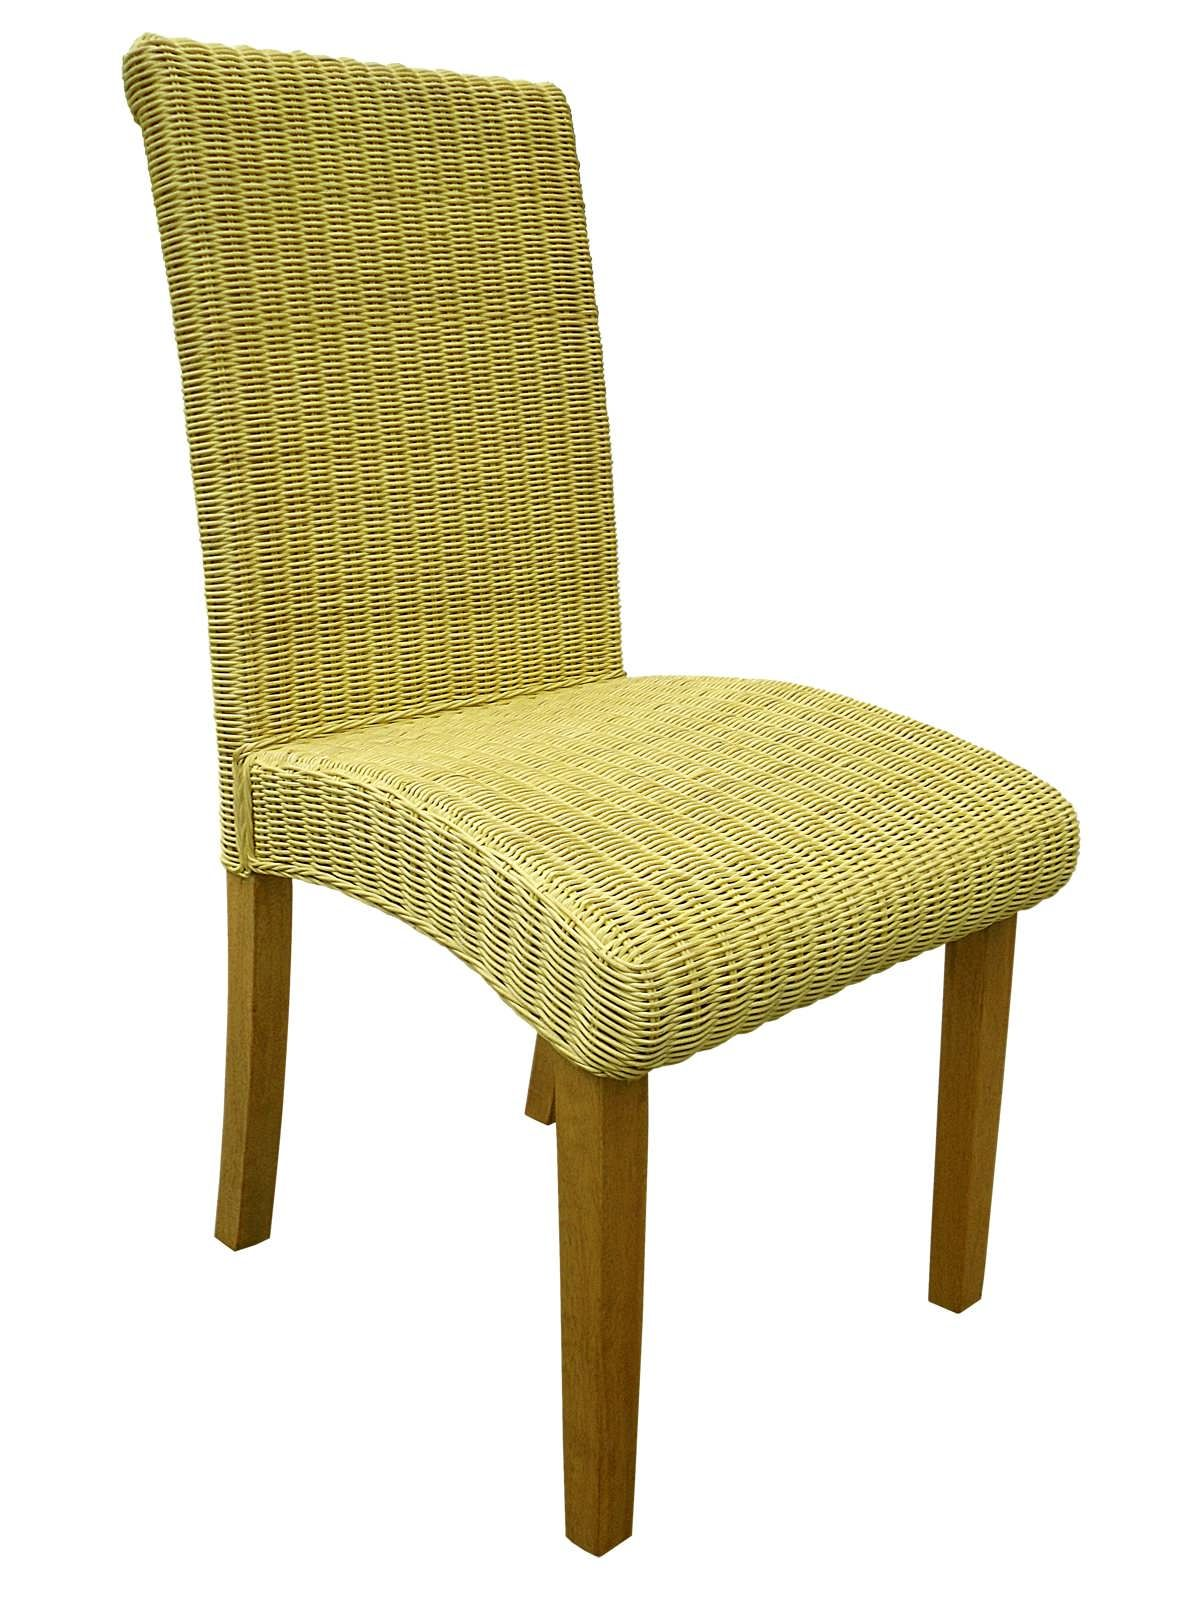 Details About Abaca Wicker Rattan Dining Chair Indoor Conservatory Dining Furniture